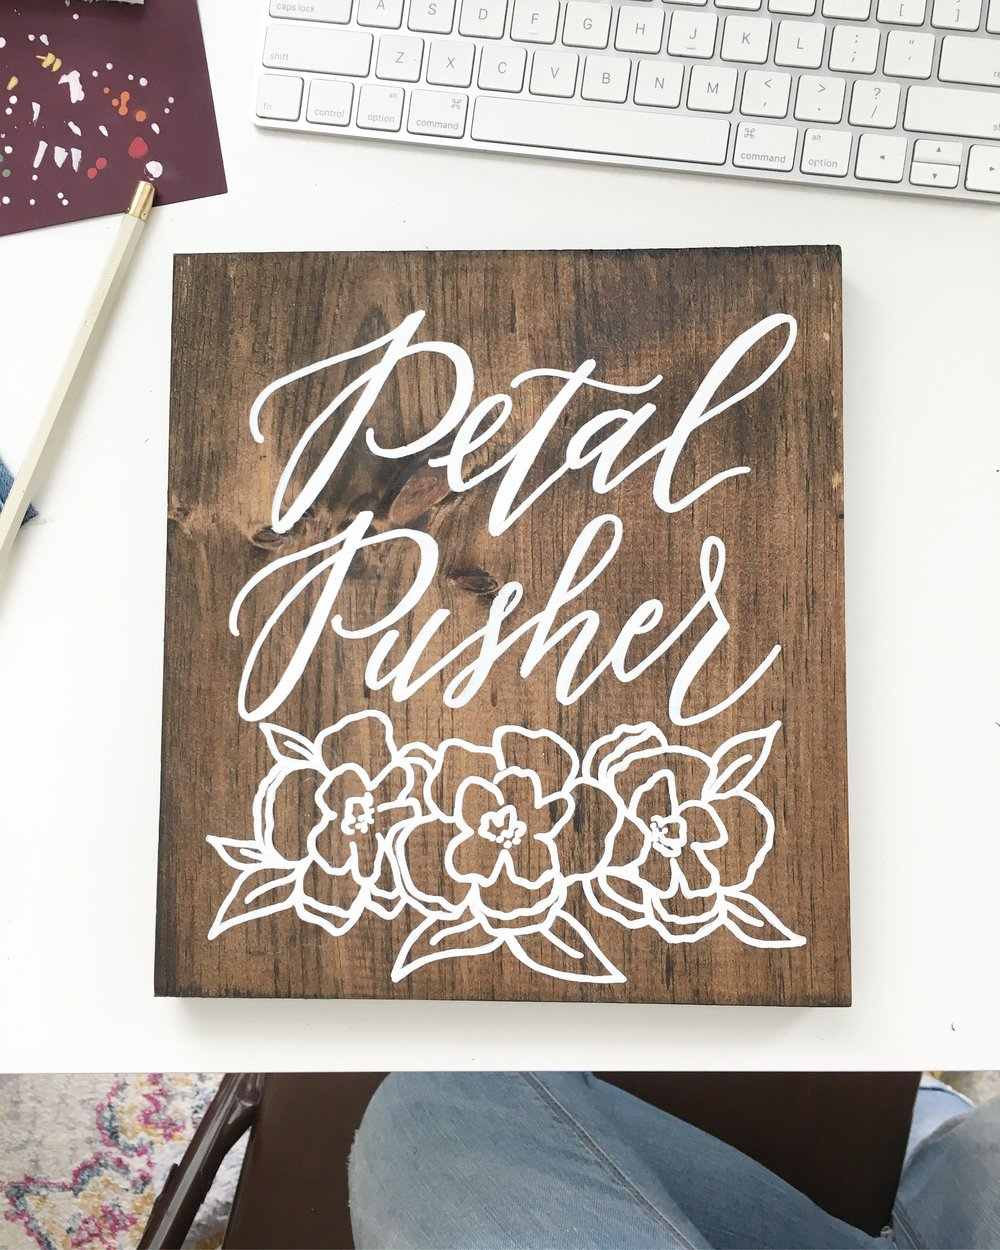 petal pusher wedding sign, wood wedding sign, wood sign shop, custom wood signs